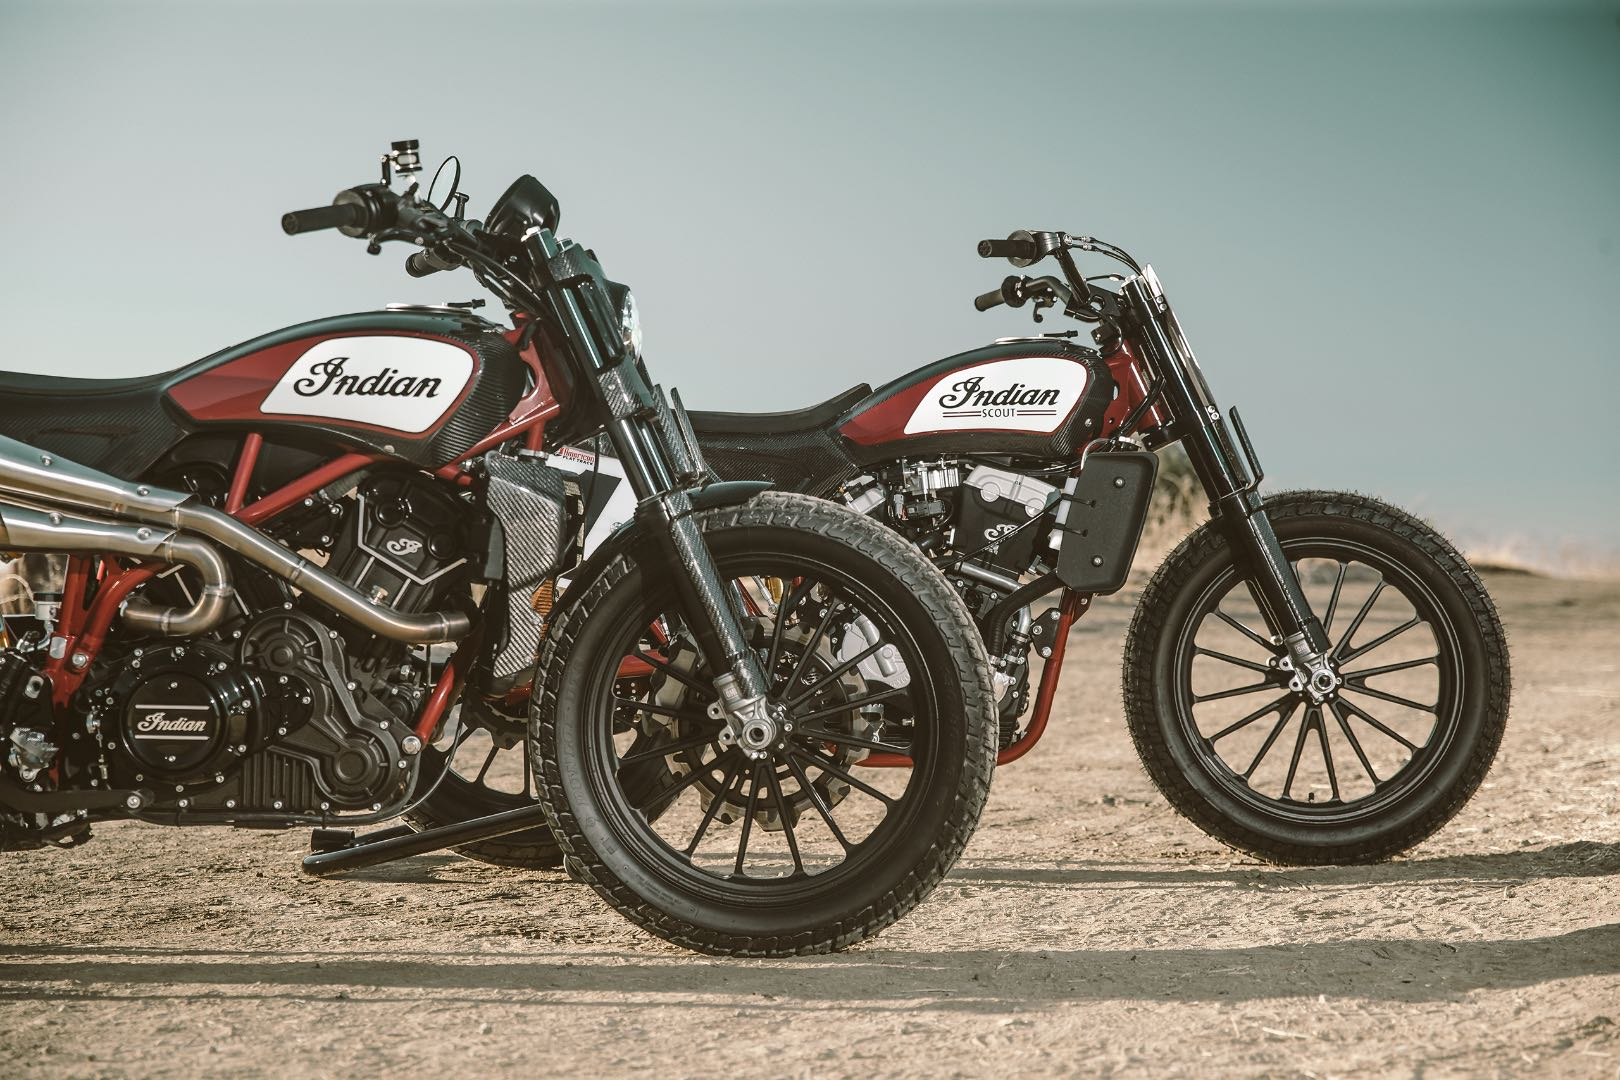 Indian Motorcycle reveals Scout FTR1200 Custom concept